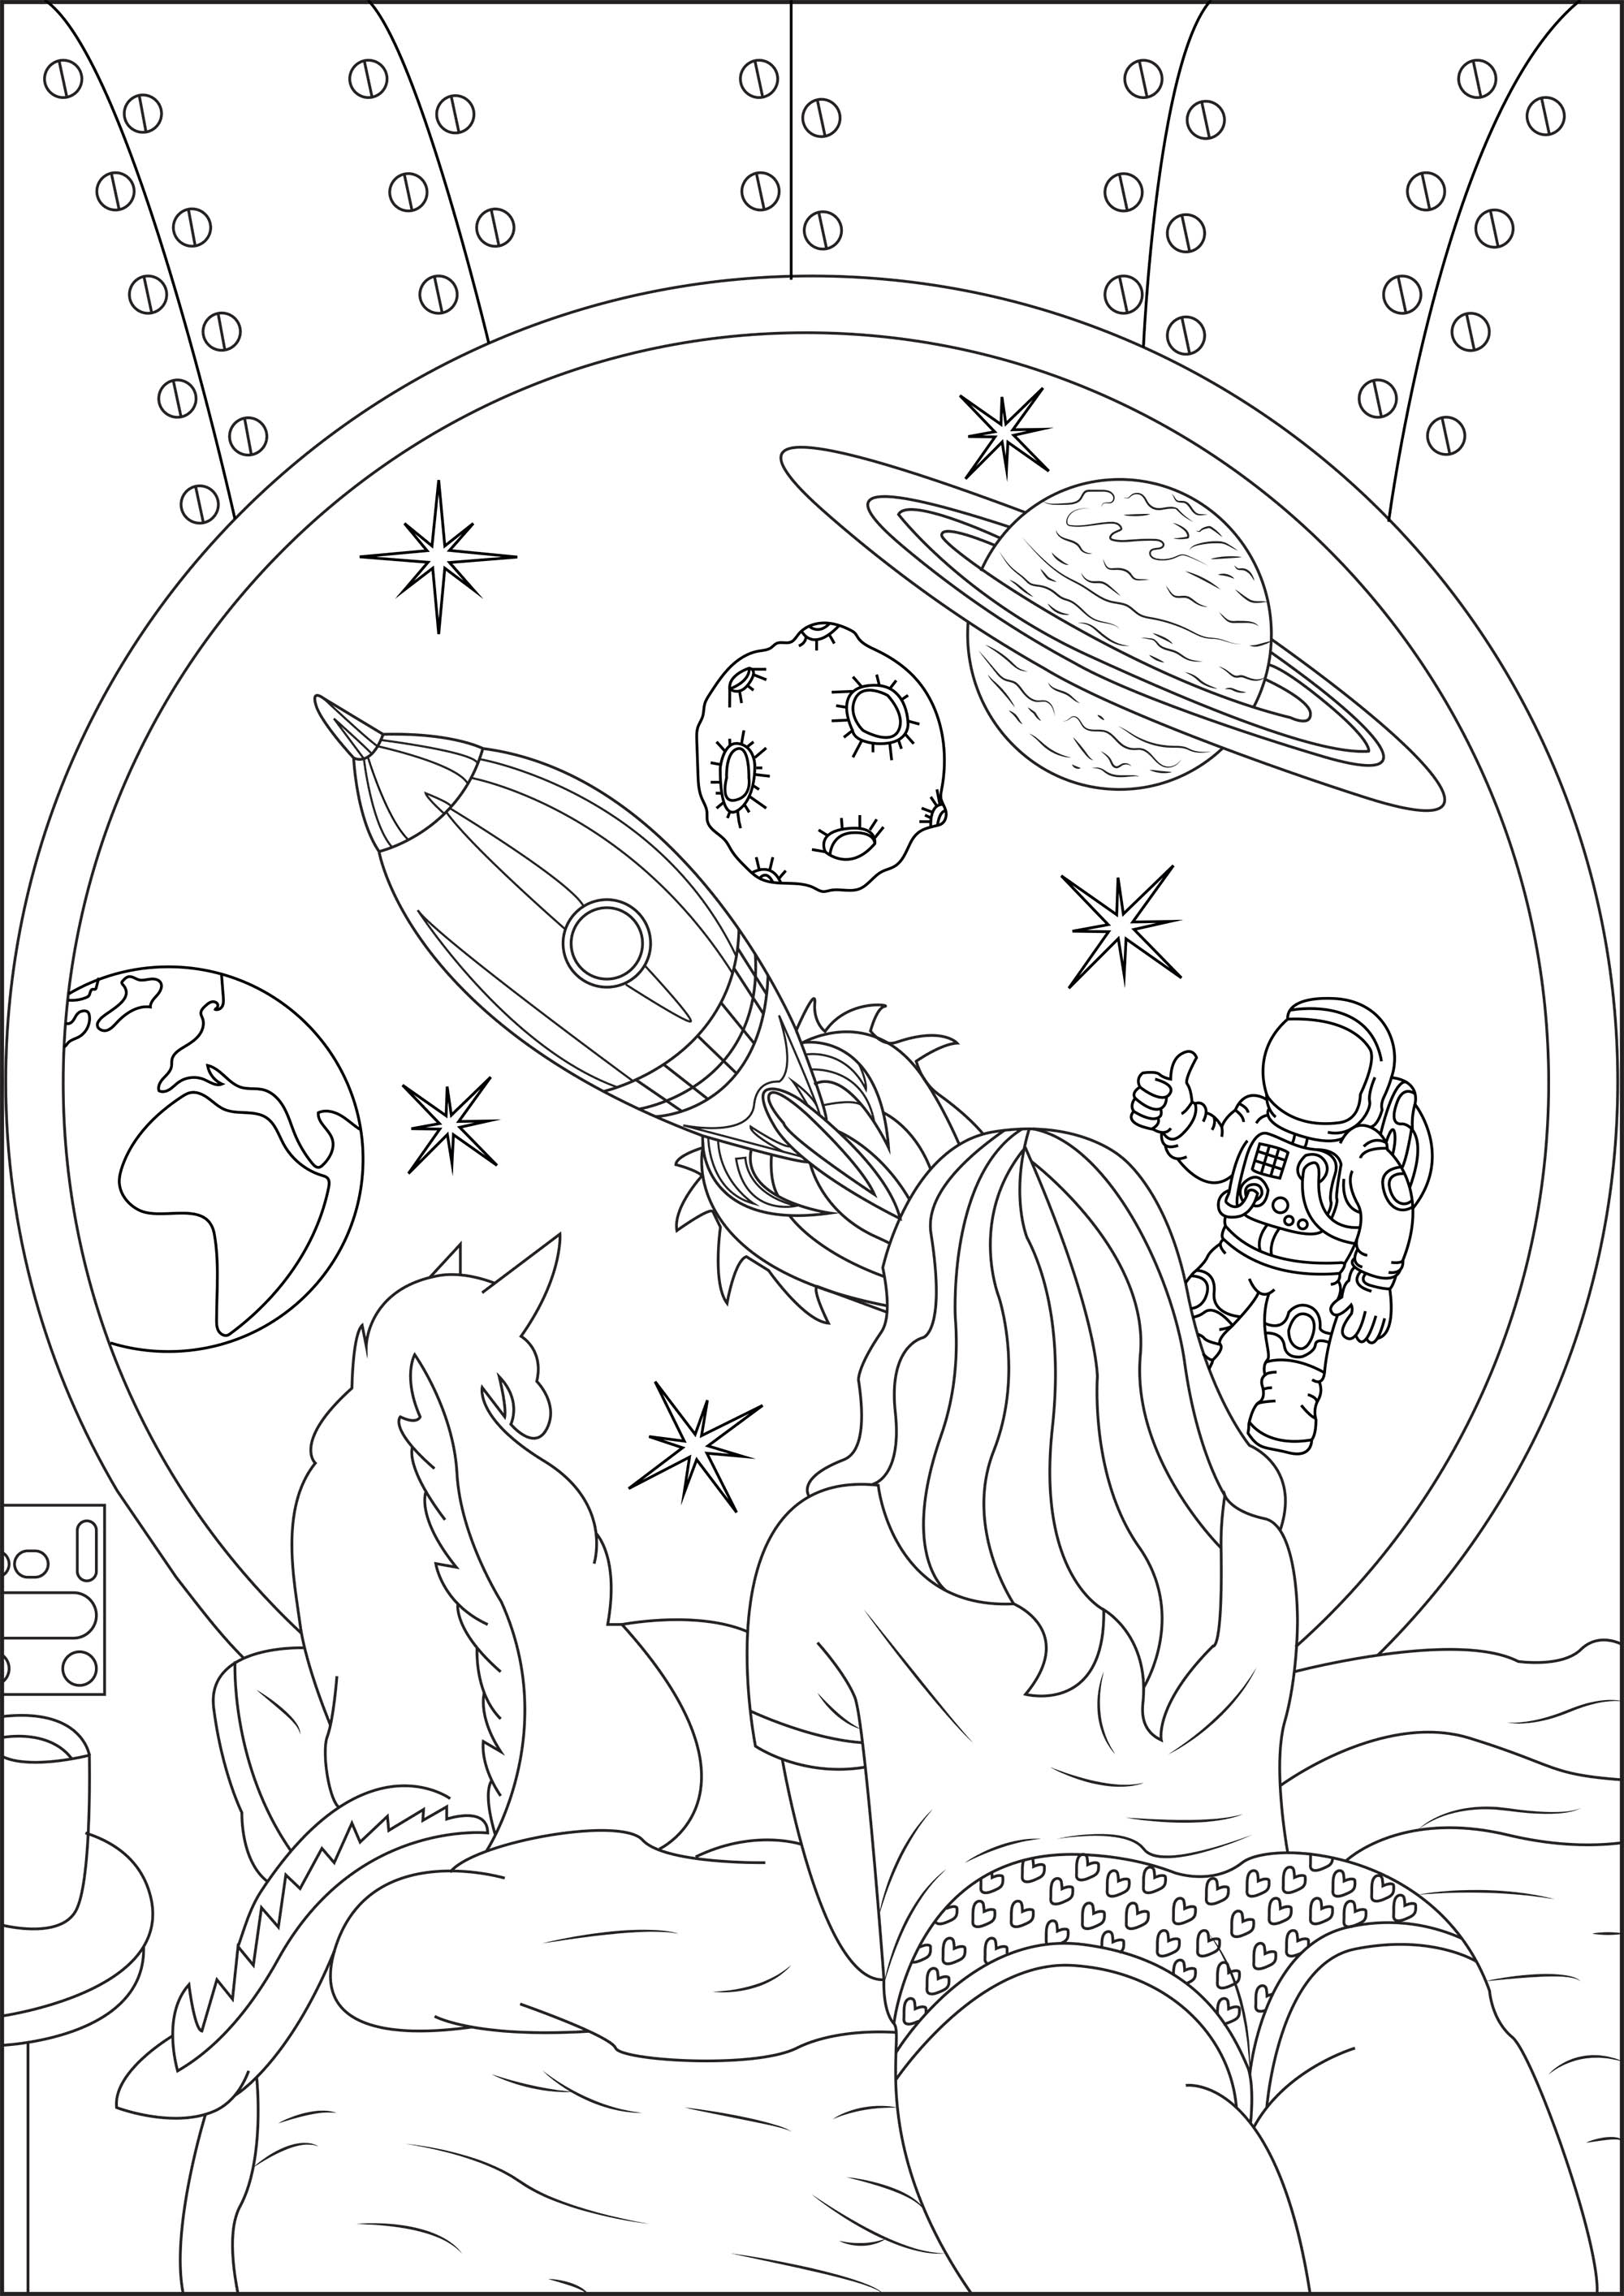 Girl dreaming of a journey in space with her cat. Through the porthole of her shuttle, she sees : a rocket, the moon, the Earth, an asteroid, Saturn, an Astronaut, and pretty bright stars